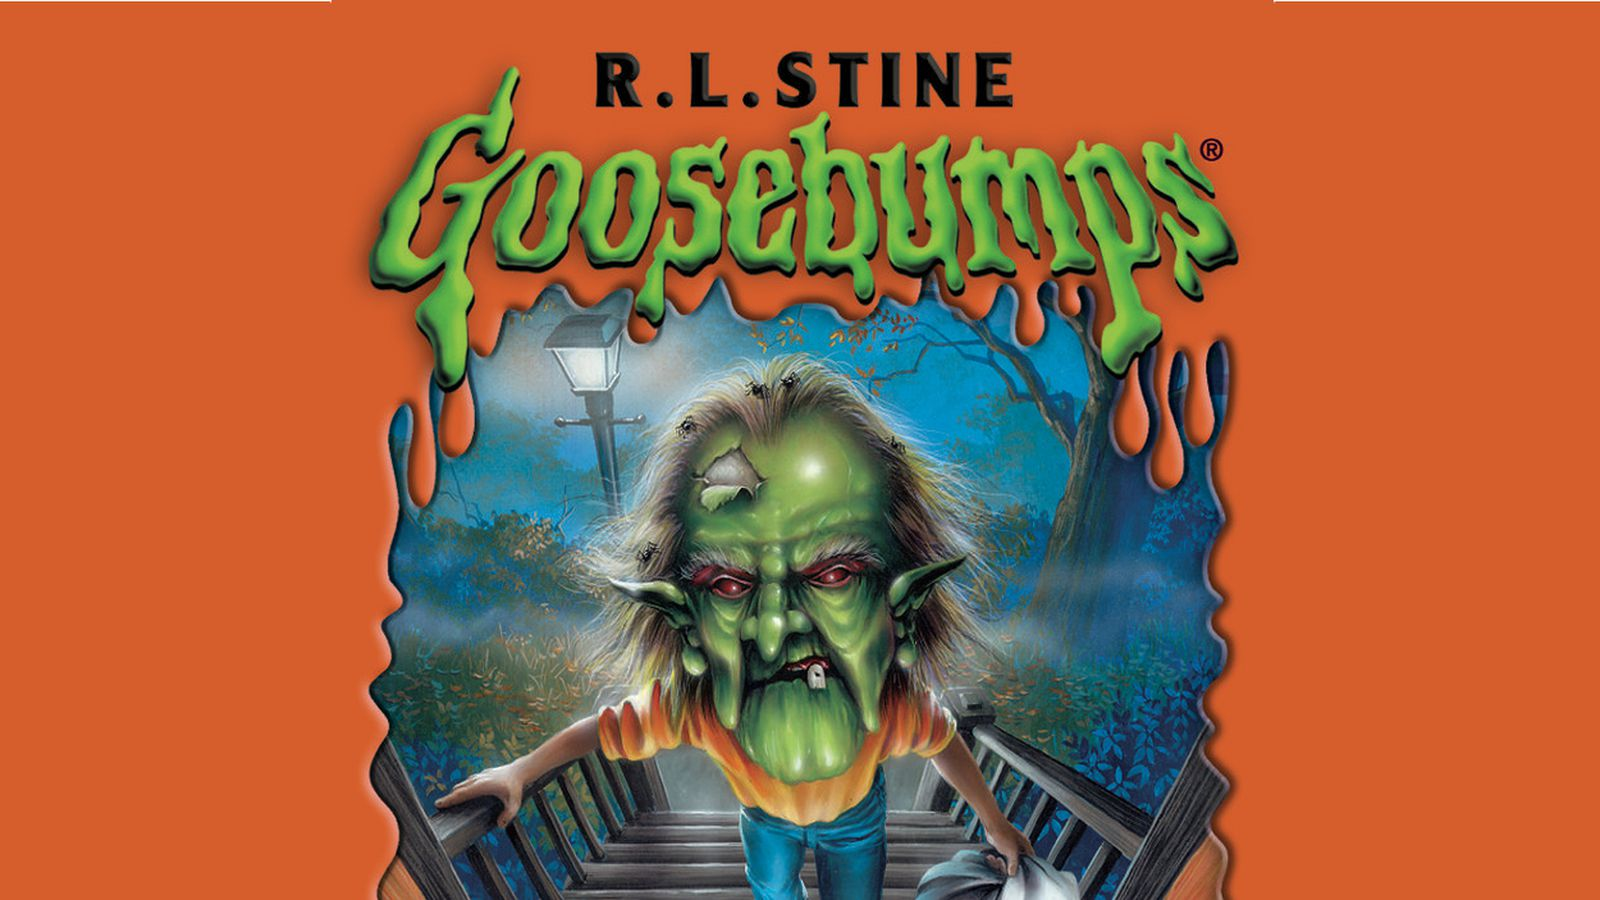 'I never wanted to be scary': an interview with R. L. Stine